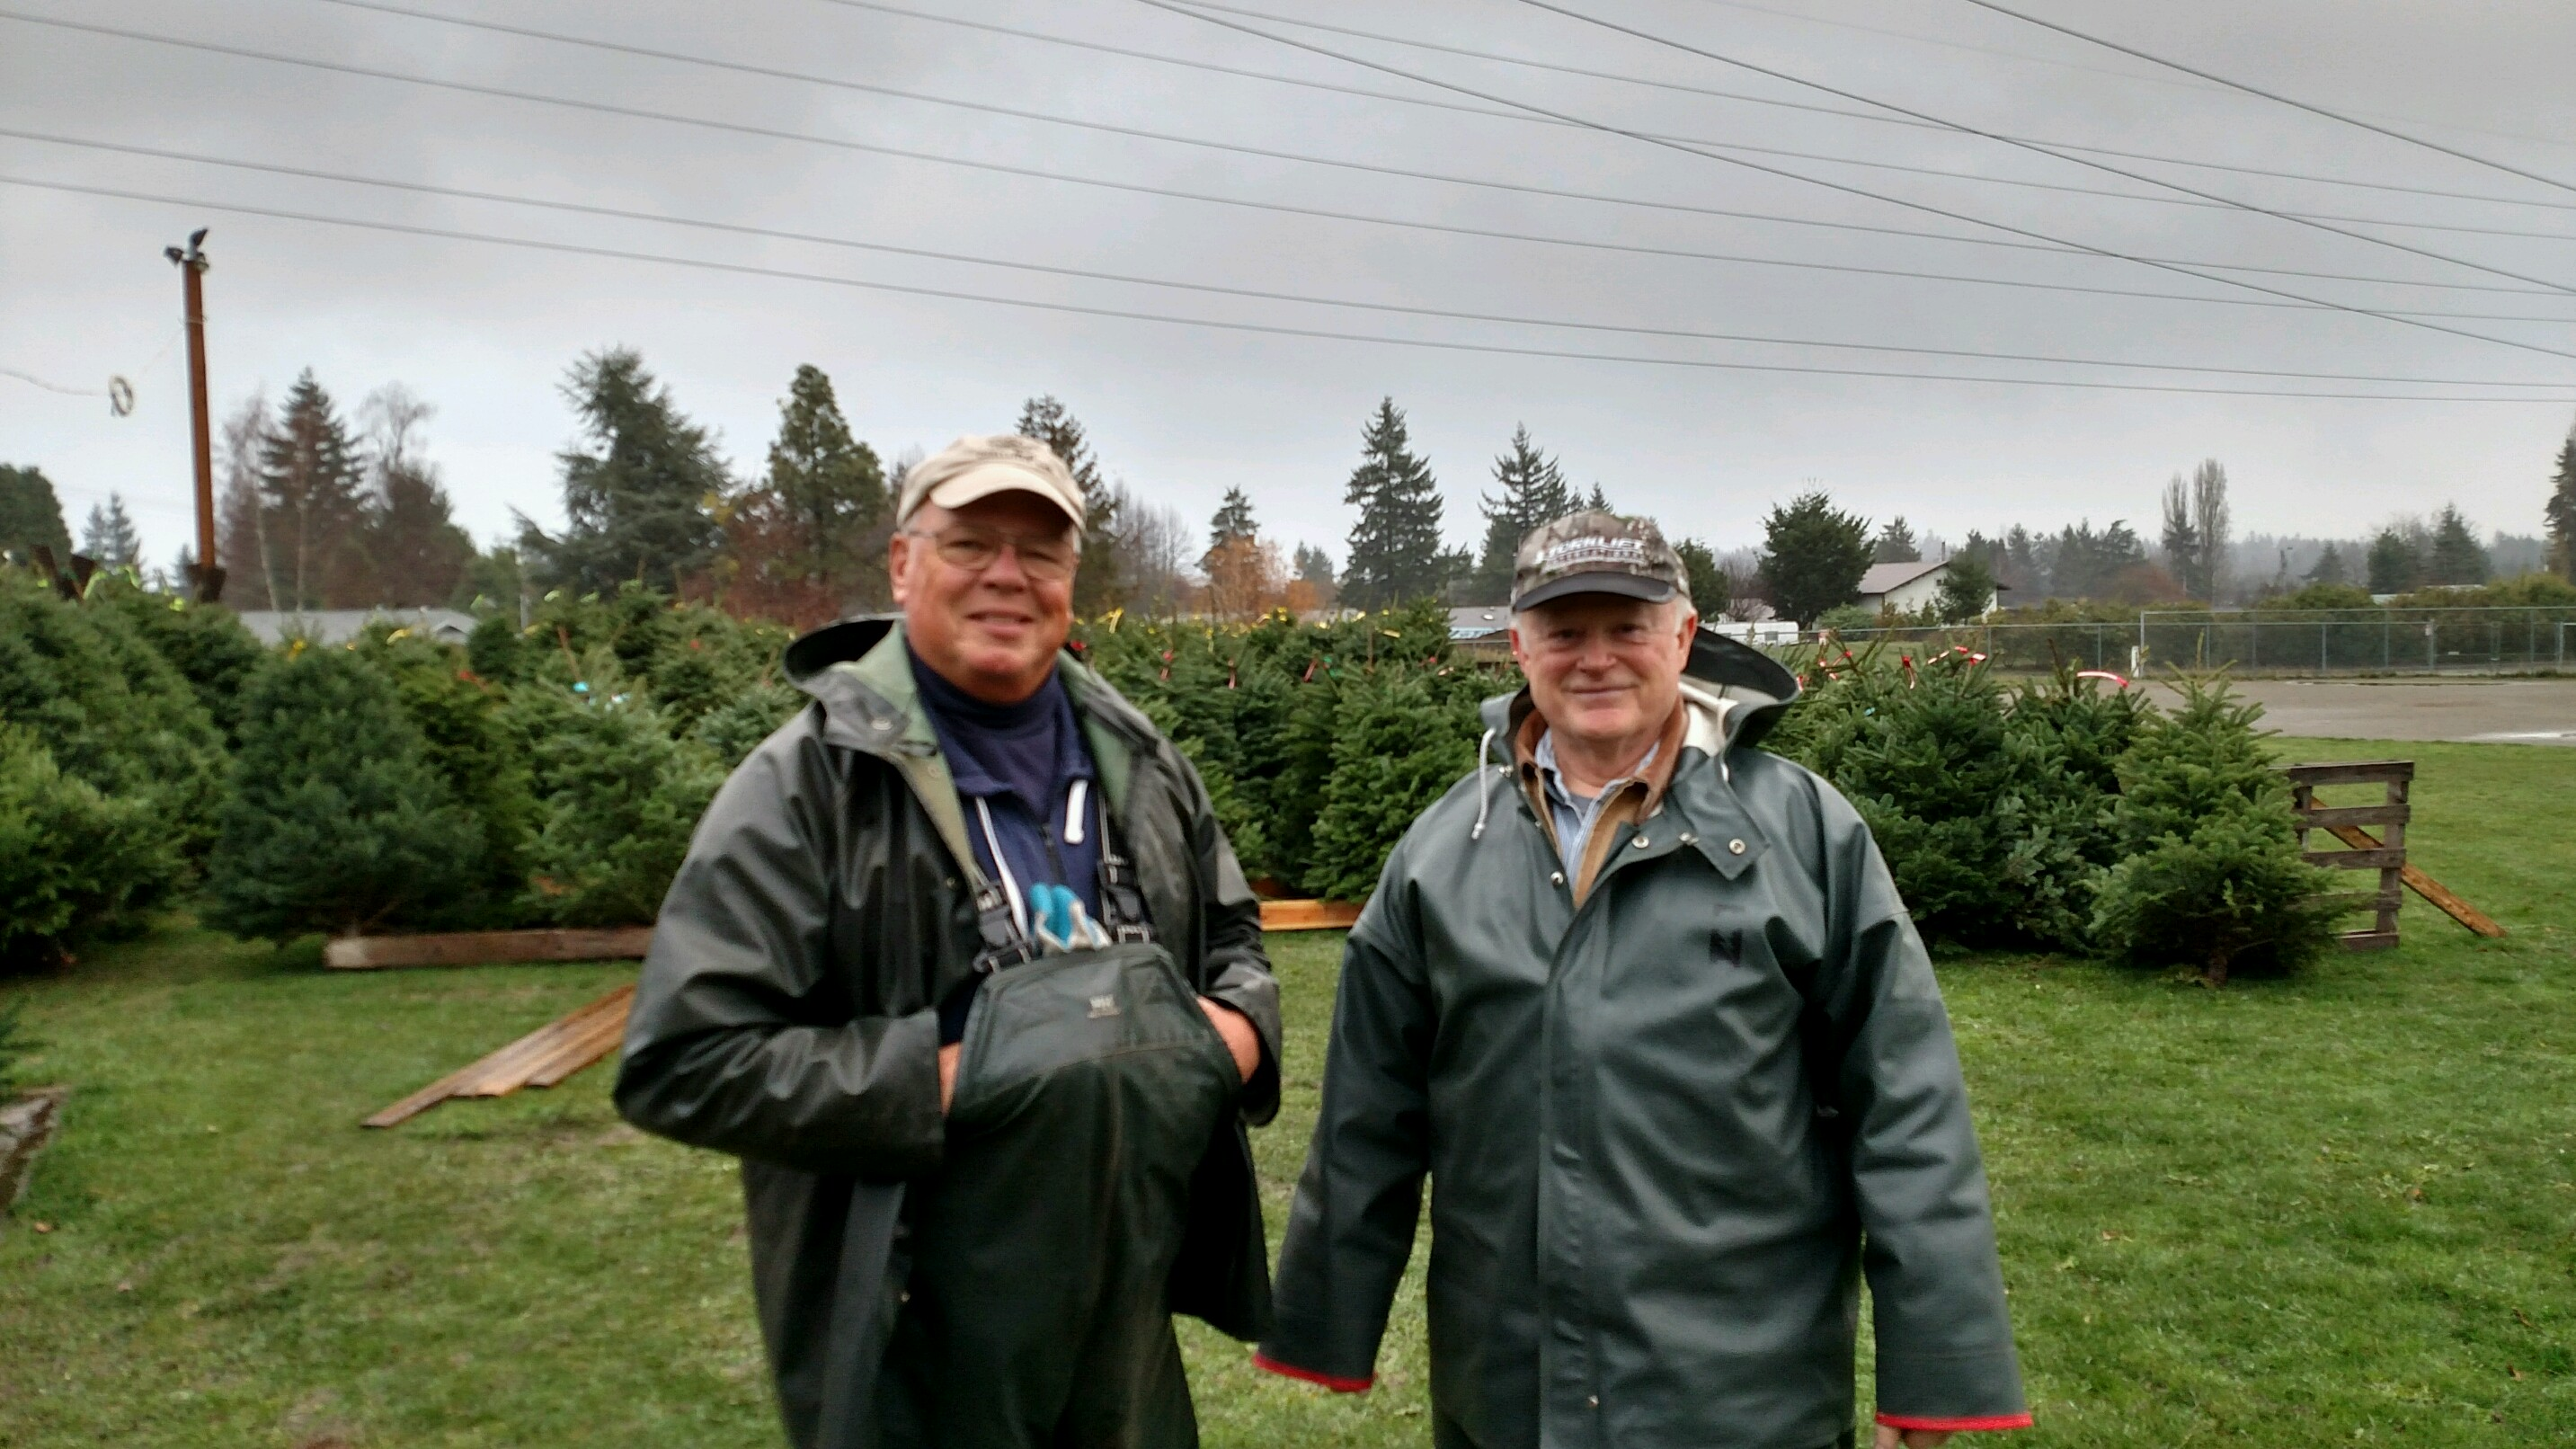 Fairwood Lions Club's Annual Christmas Tree Sales Benefit